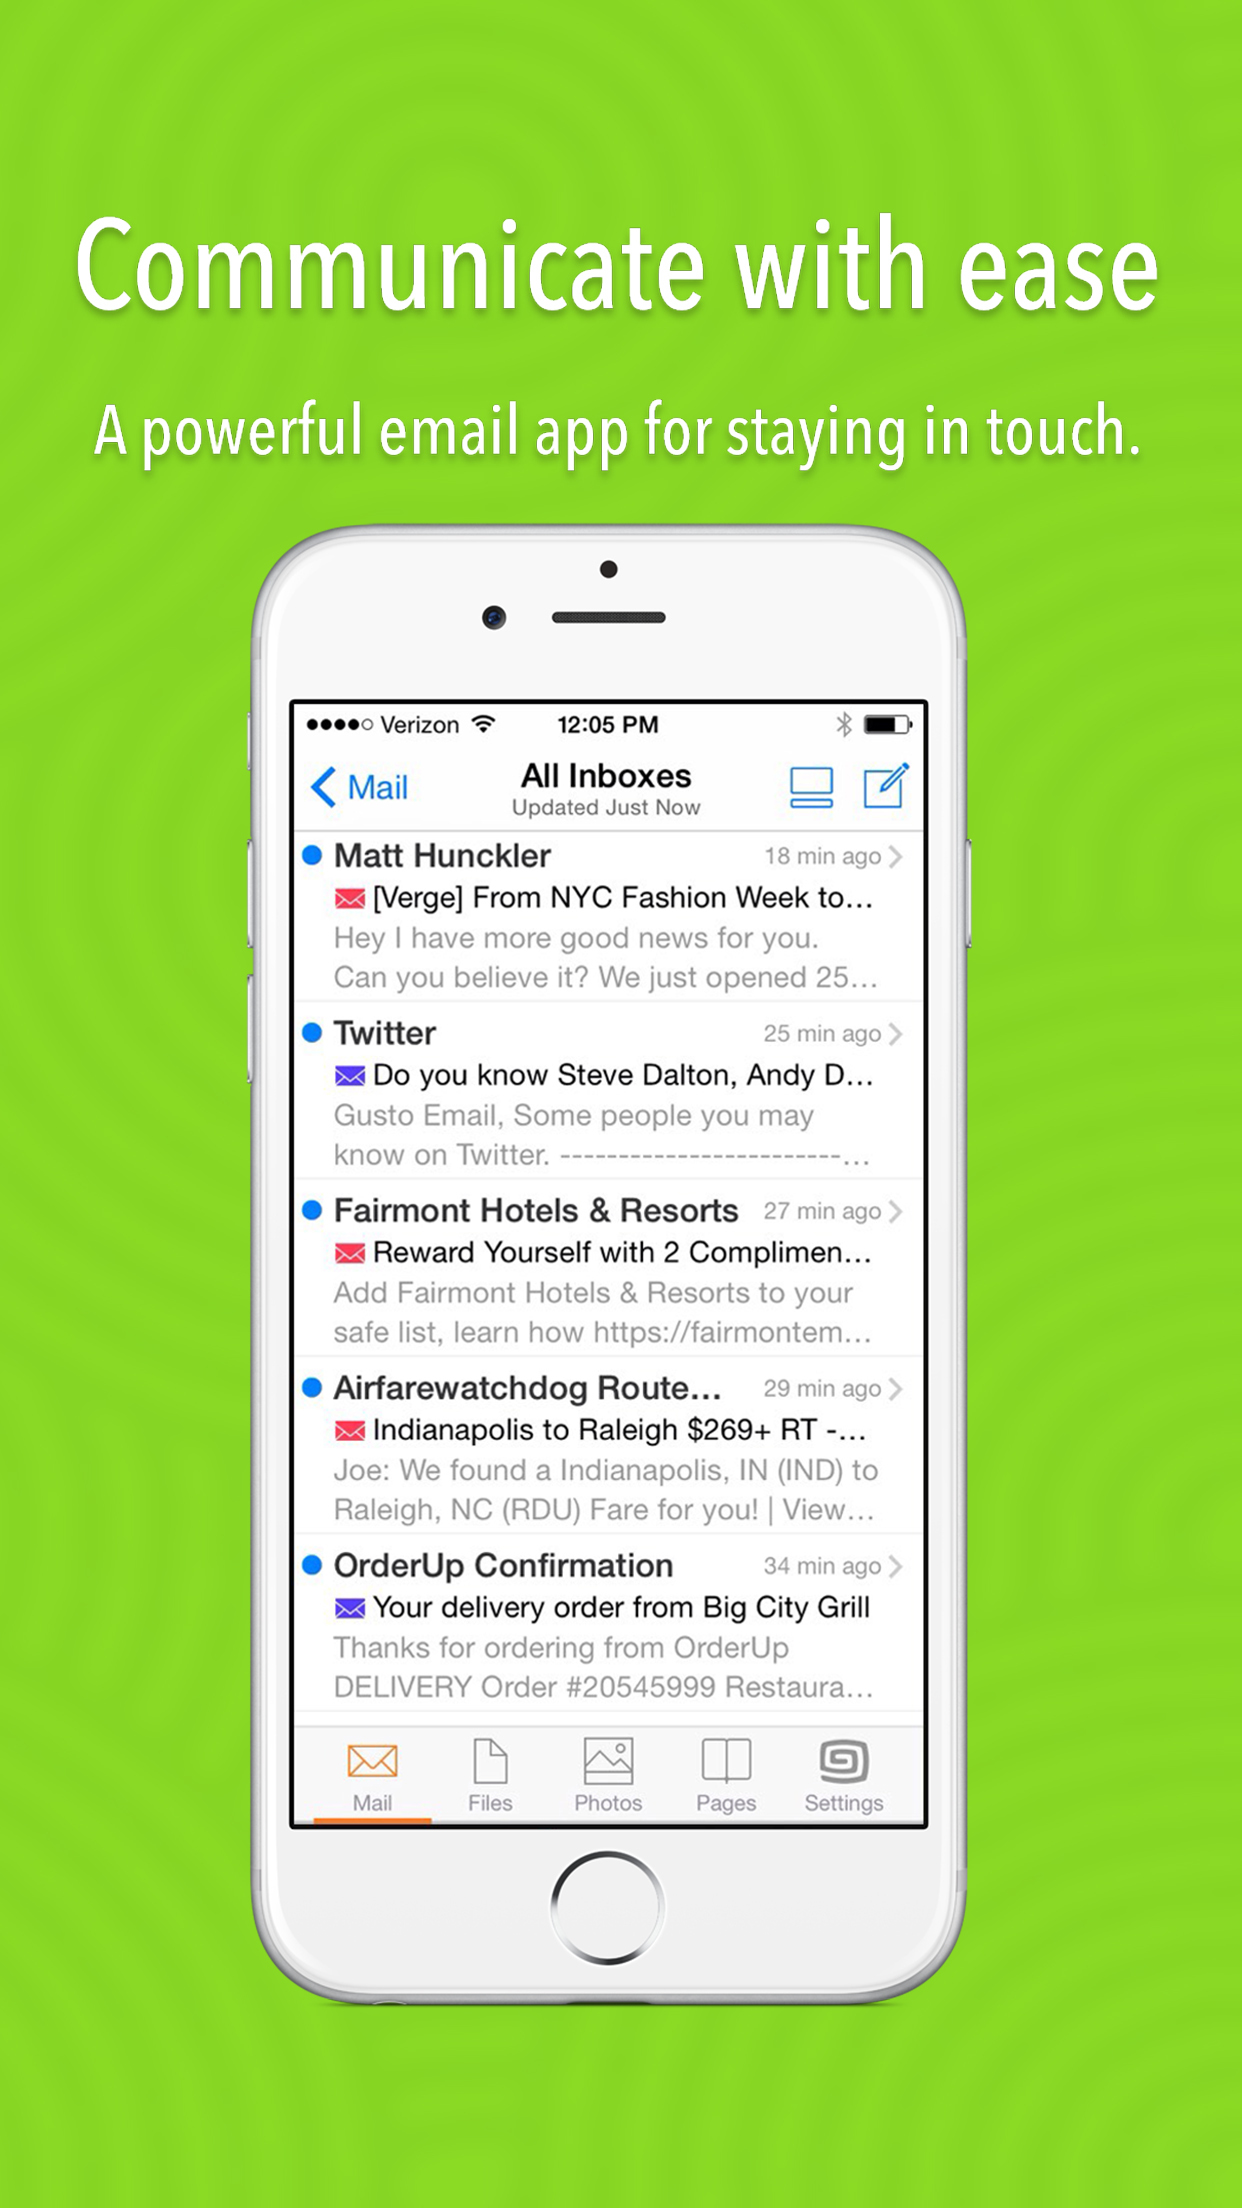 Gusto - Email, Files, Photos Simplified